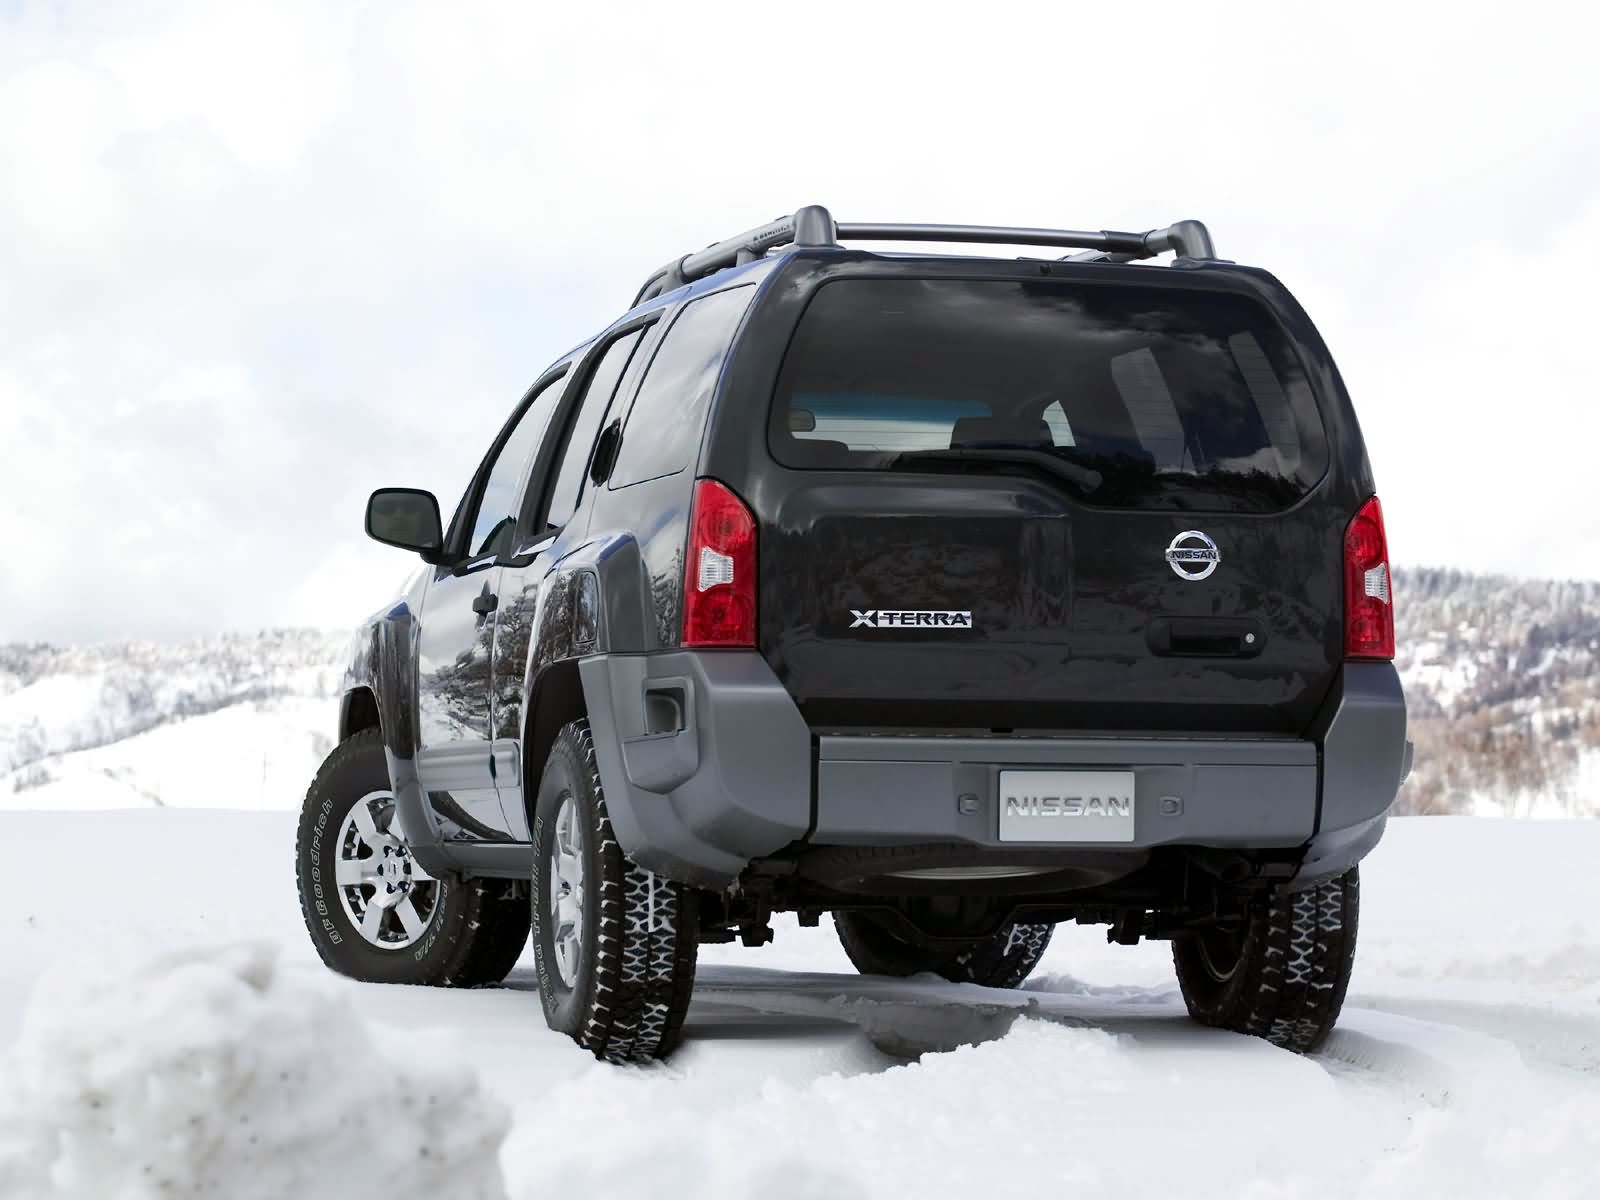 Nissan Xterra photo 6575